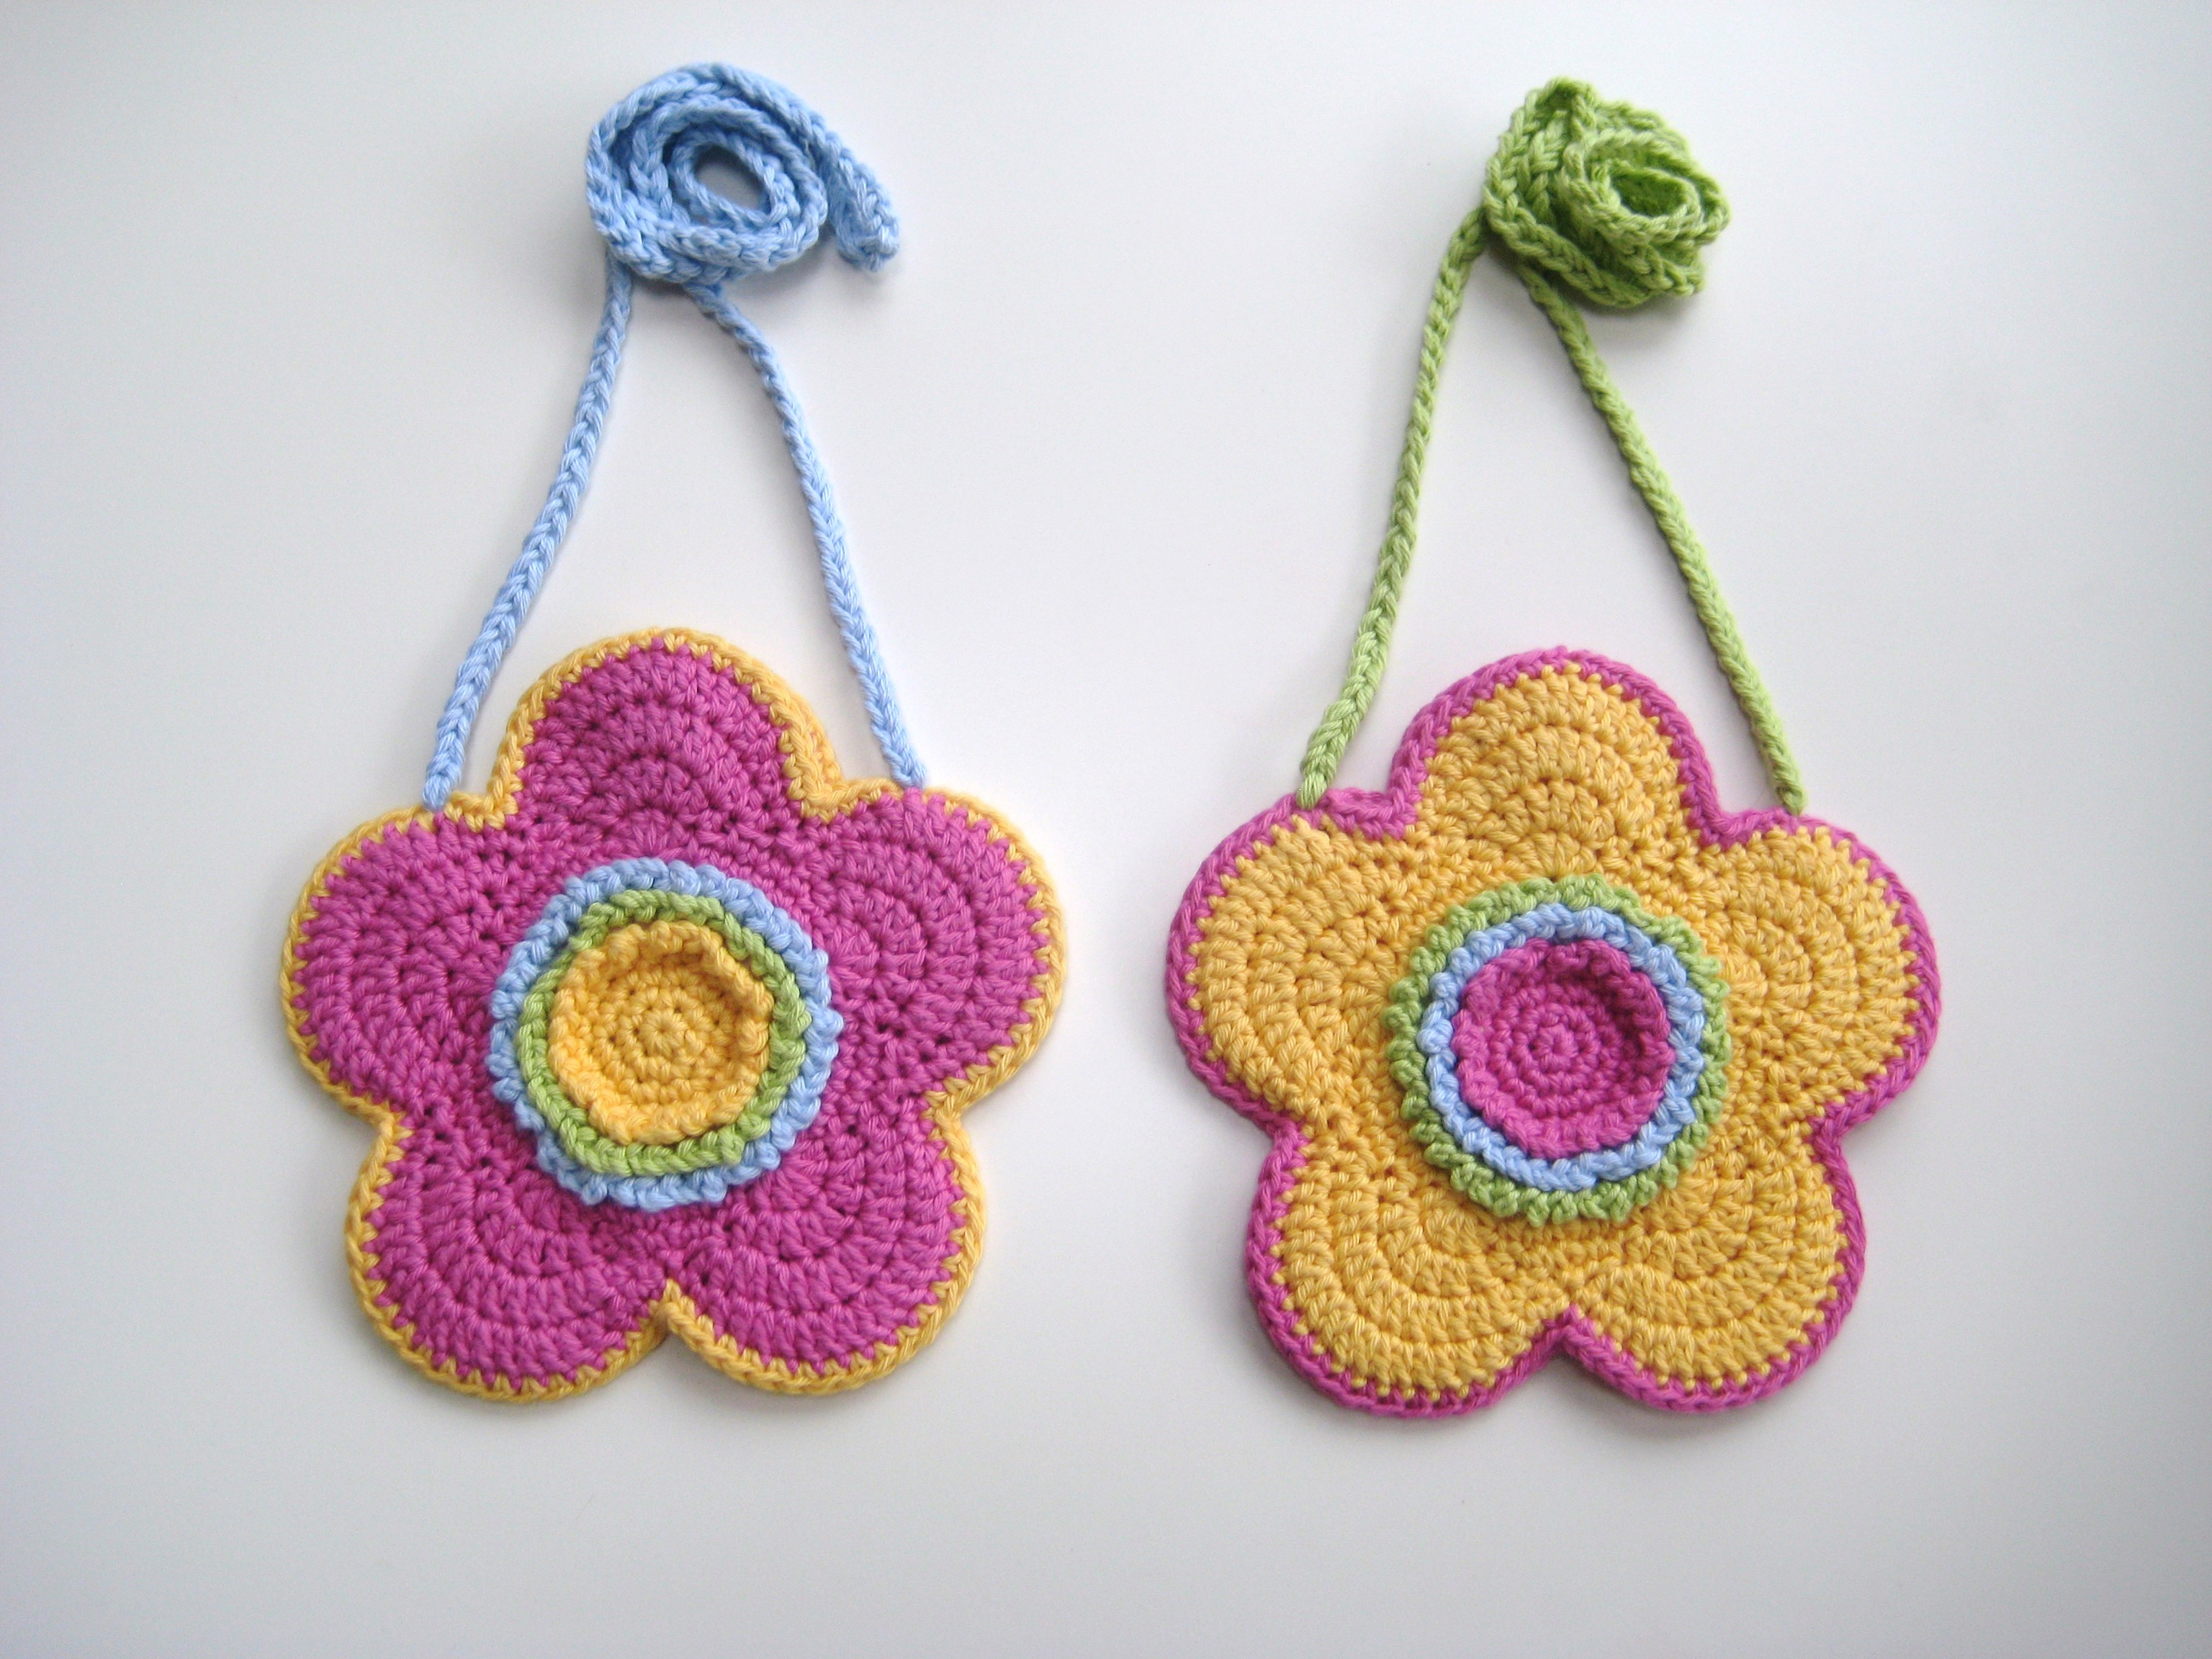 Crochet bag, Flower-shaped bag, Pattern No19, in both UK and US crochet terms